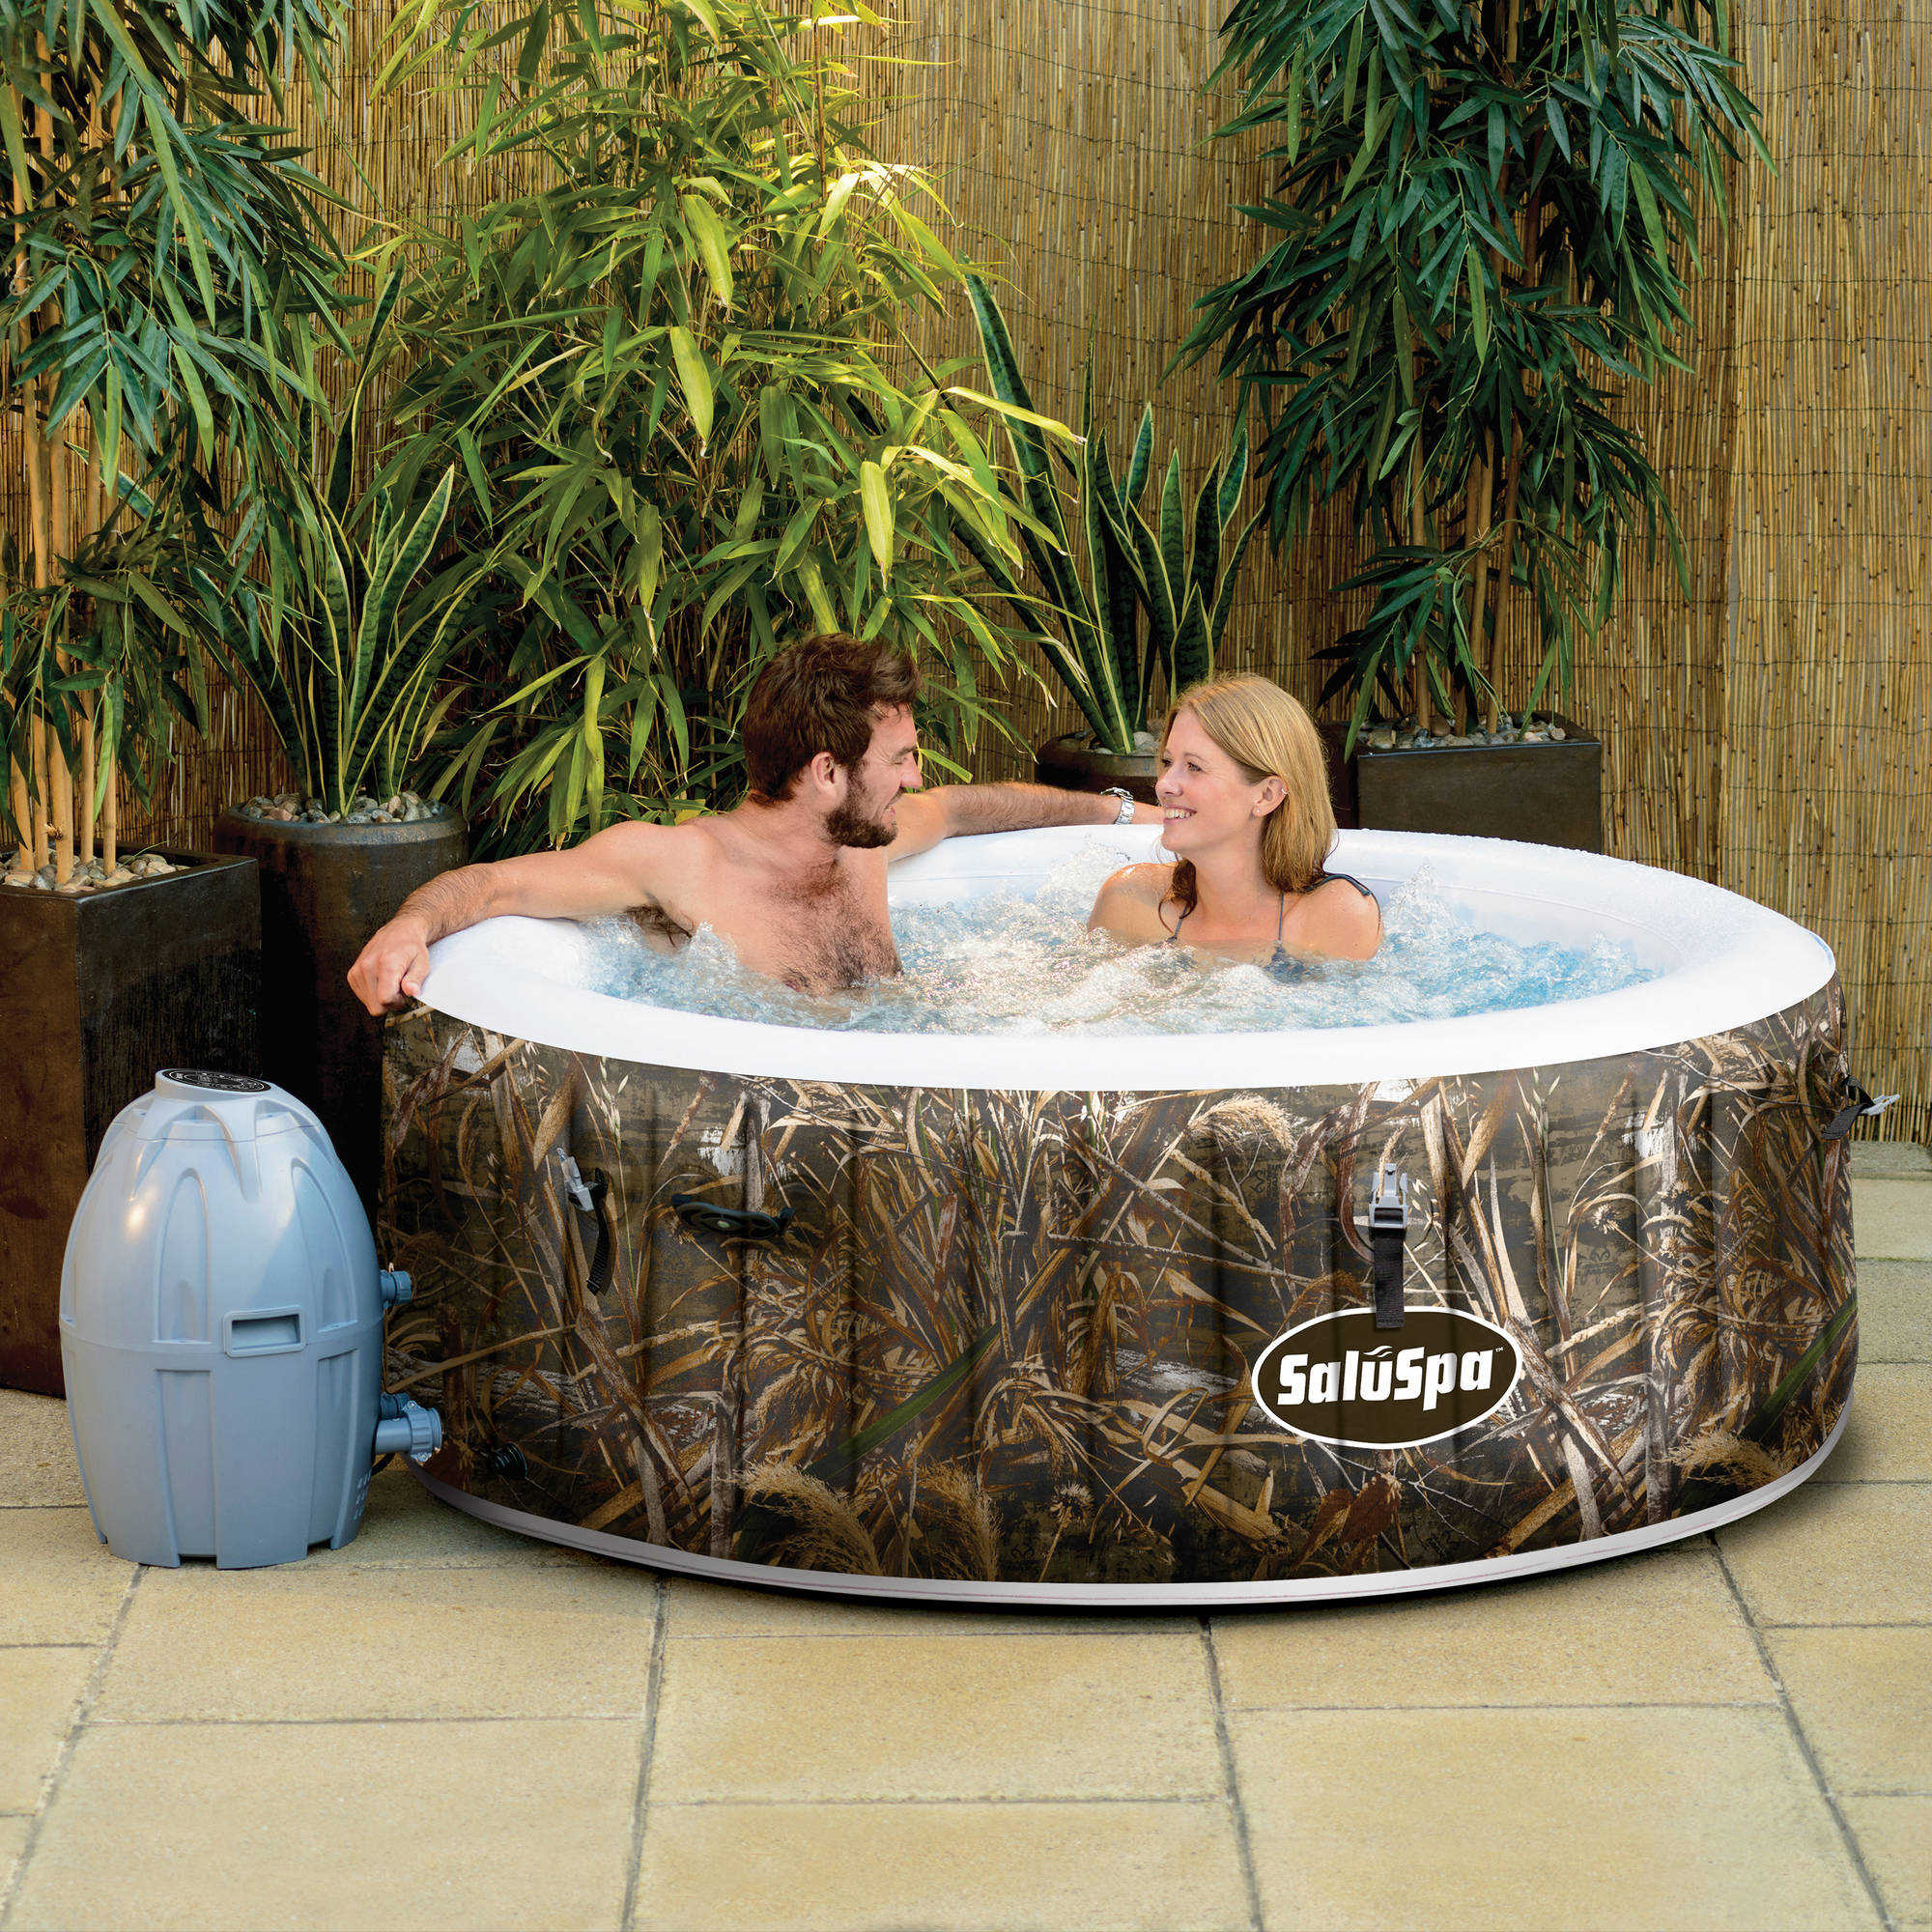 SaluSpa Realtree MAX-5 AirJet 4-Person Portable Inflatable Hot Tub Spa